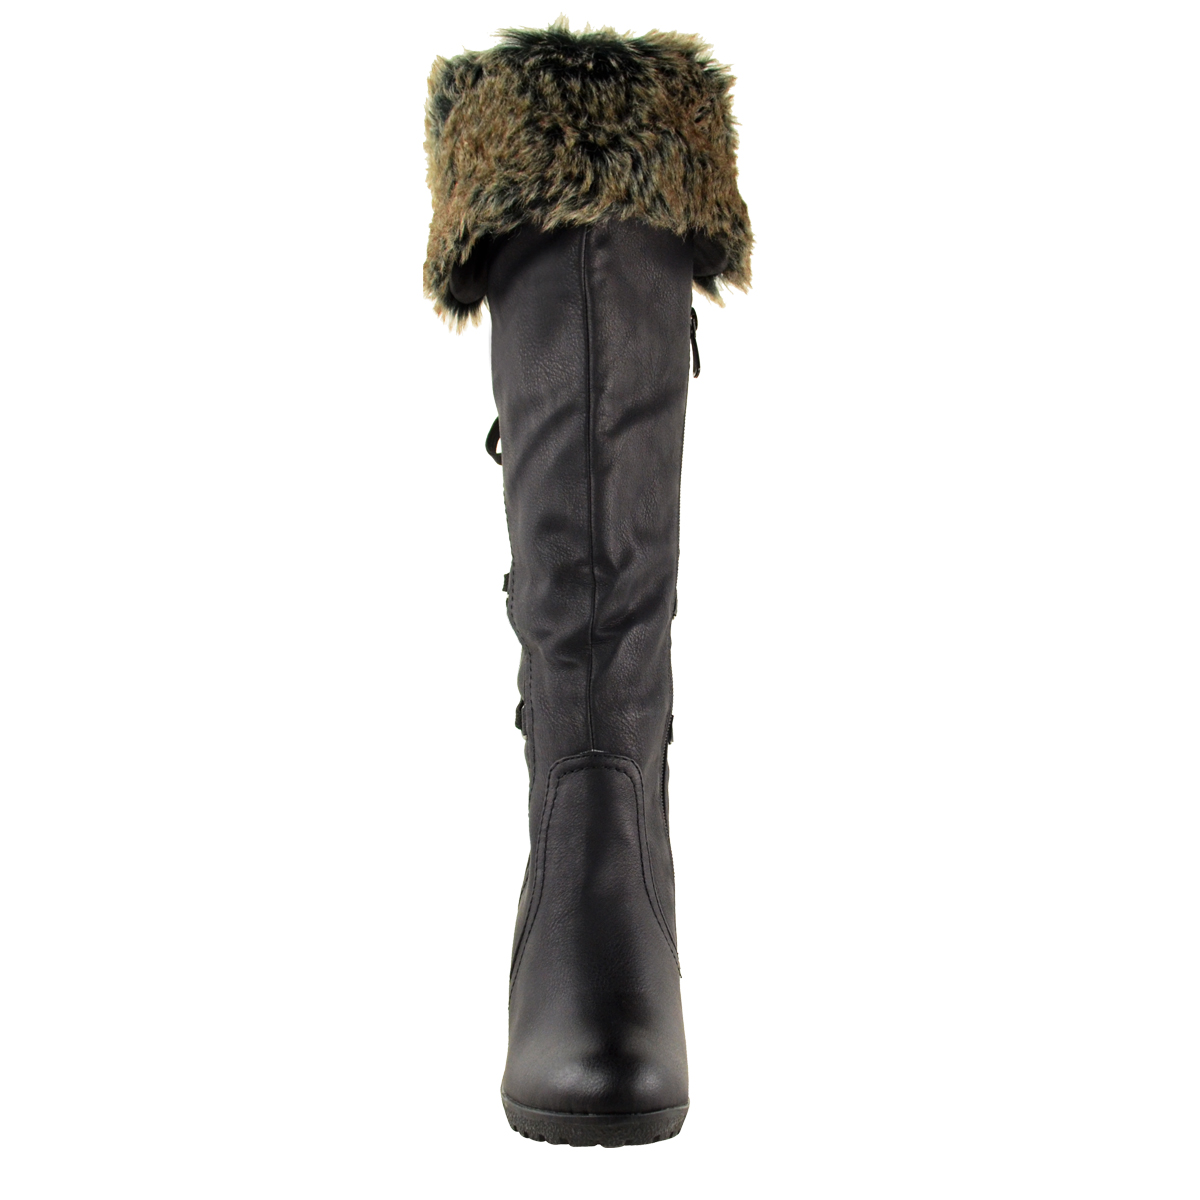 WOMENS-LADIES-MID-WEDGE-HIGH-HEEL-FUR-LINED-WARM-WINTER-KNEE-CALF-ZIP-BOOTS-SIZE thumbnail 6